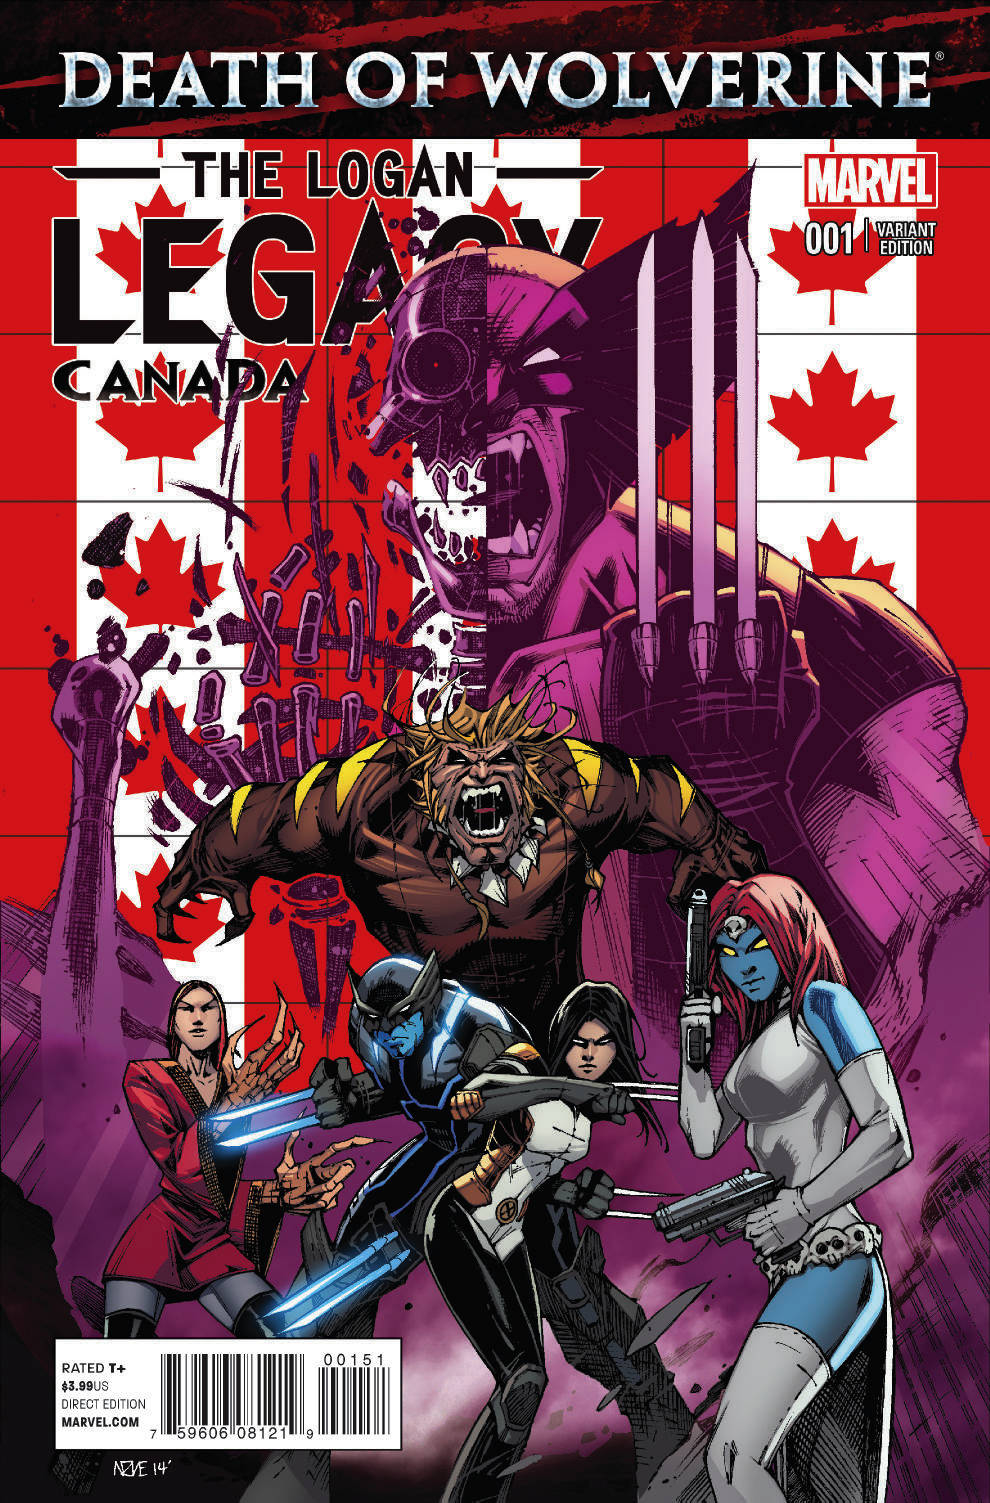 DEATH OF WOLVERINE LOGAN LEGACY #1 (OF 7) CANADA VAR (PP #11